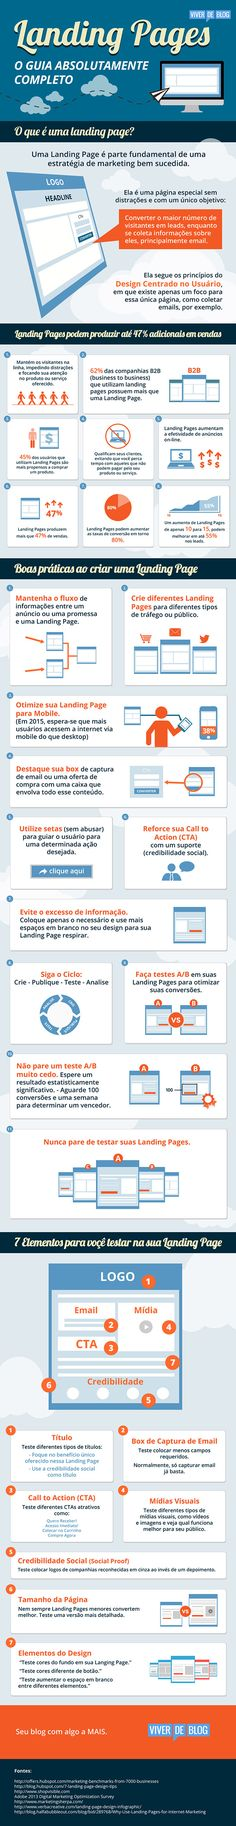 LandingPages 600px [Infográfico] Landing Pages: O Guia Absolutamente Completo